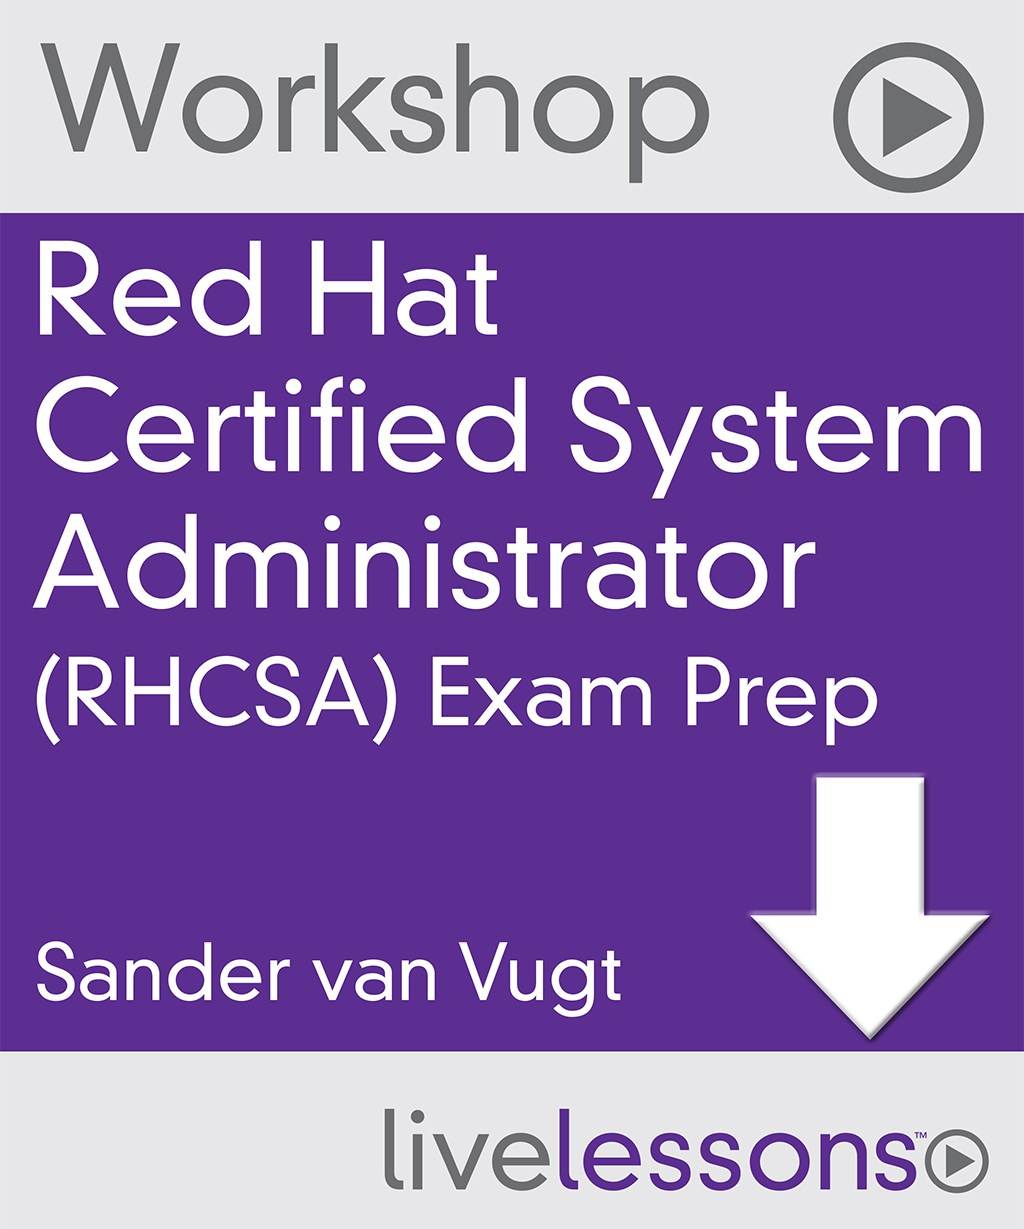 Red Hat Certified System Administrator (RHCSA) Exam Prep Video Workshop, Downloadable Version